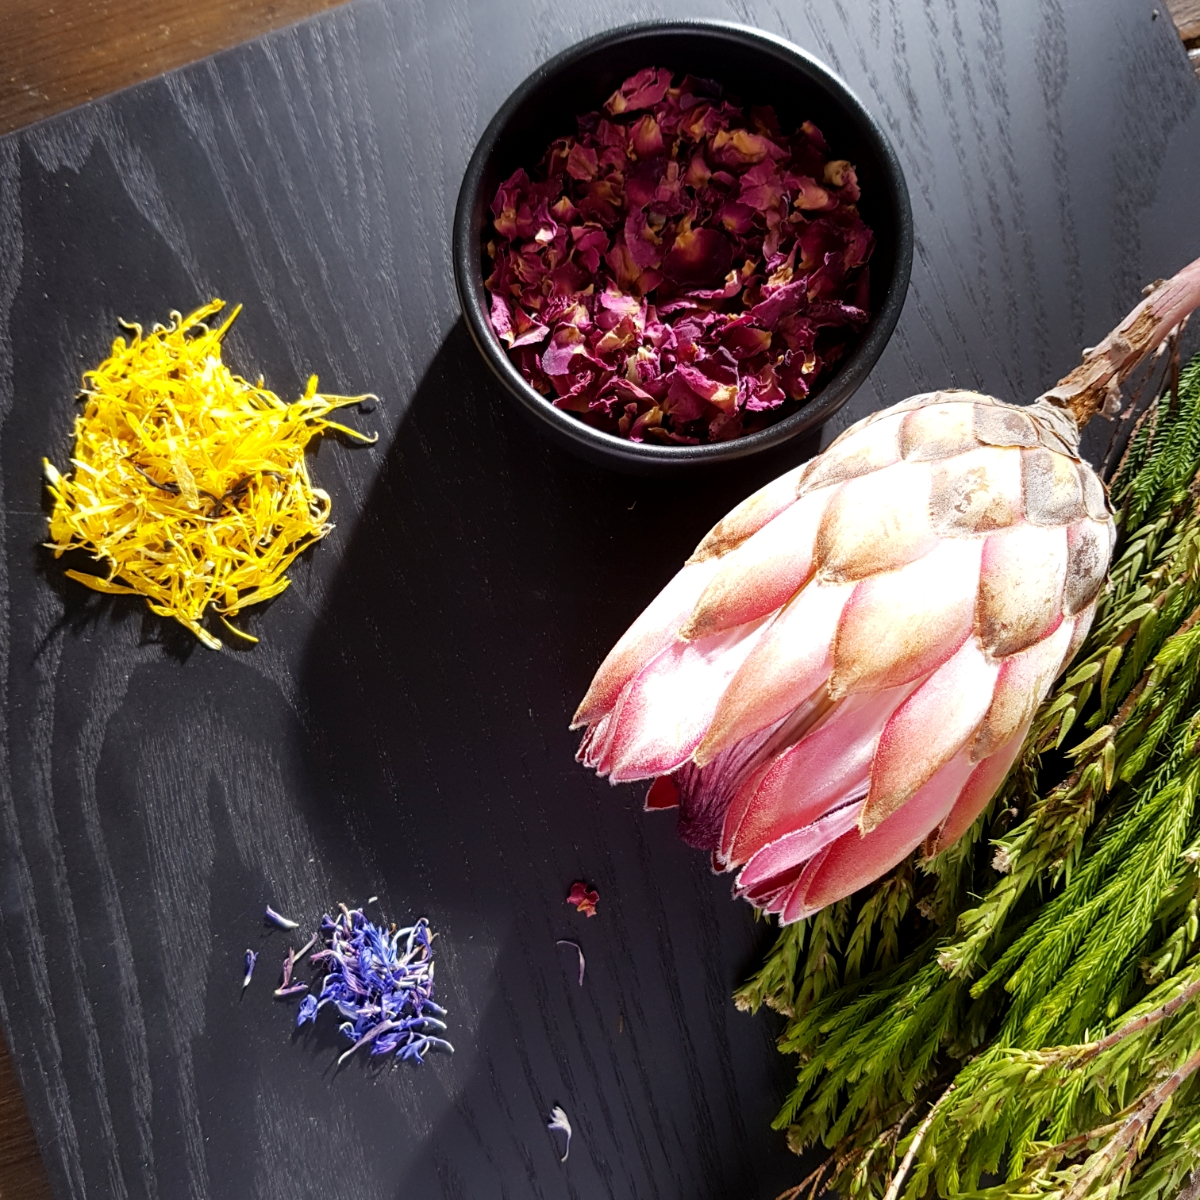 Dried flowers, herbs and spices